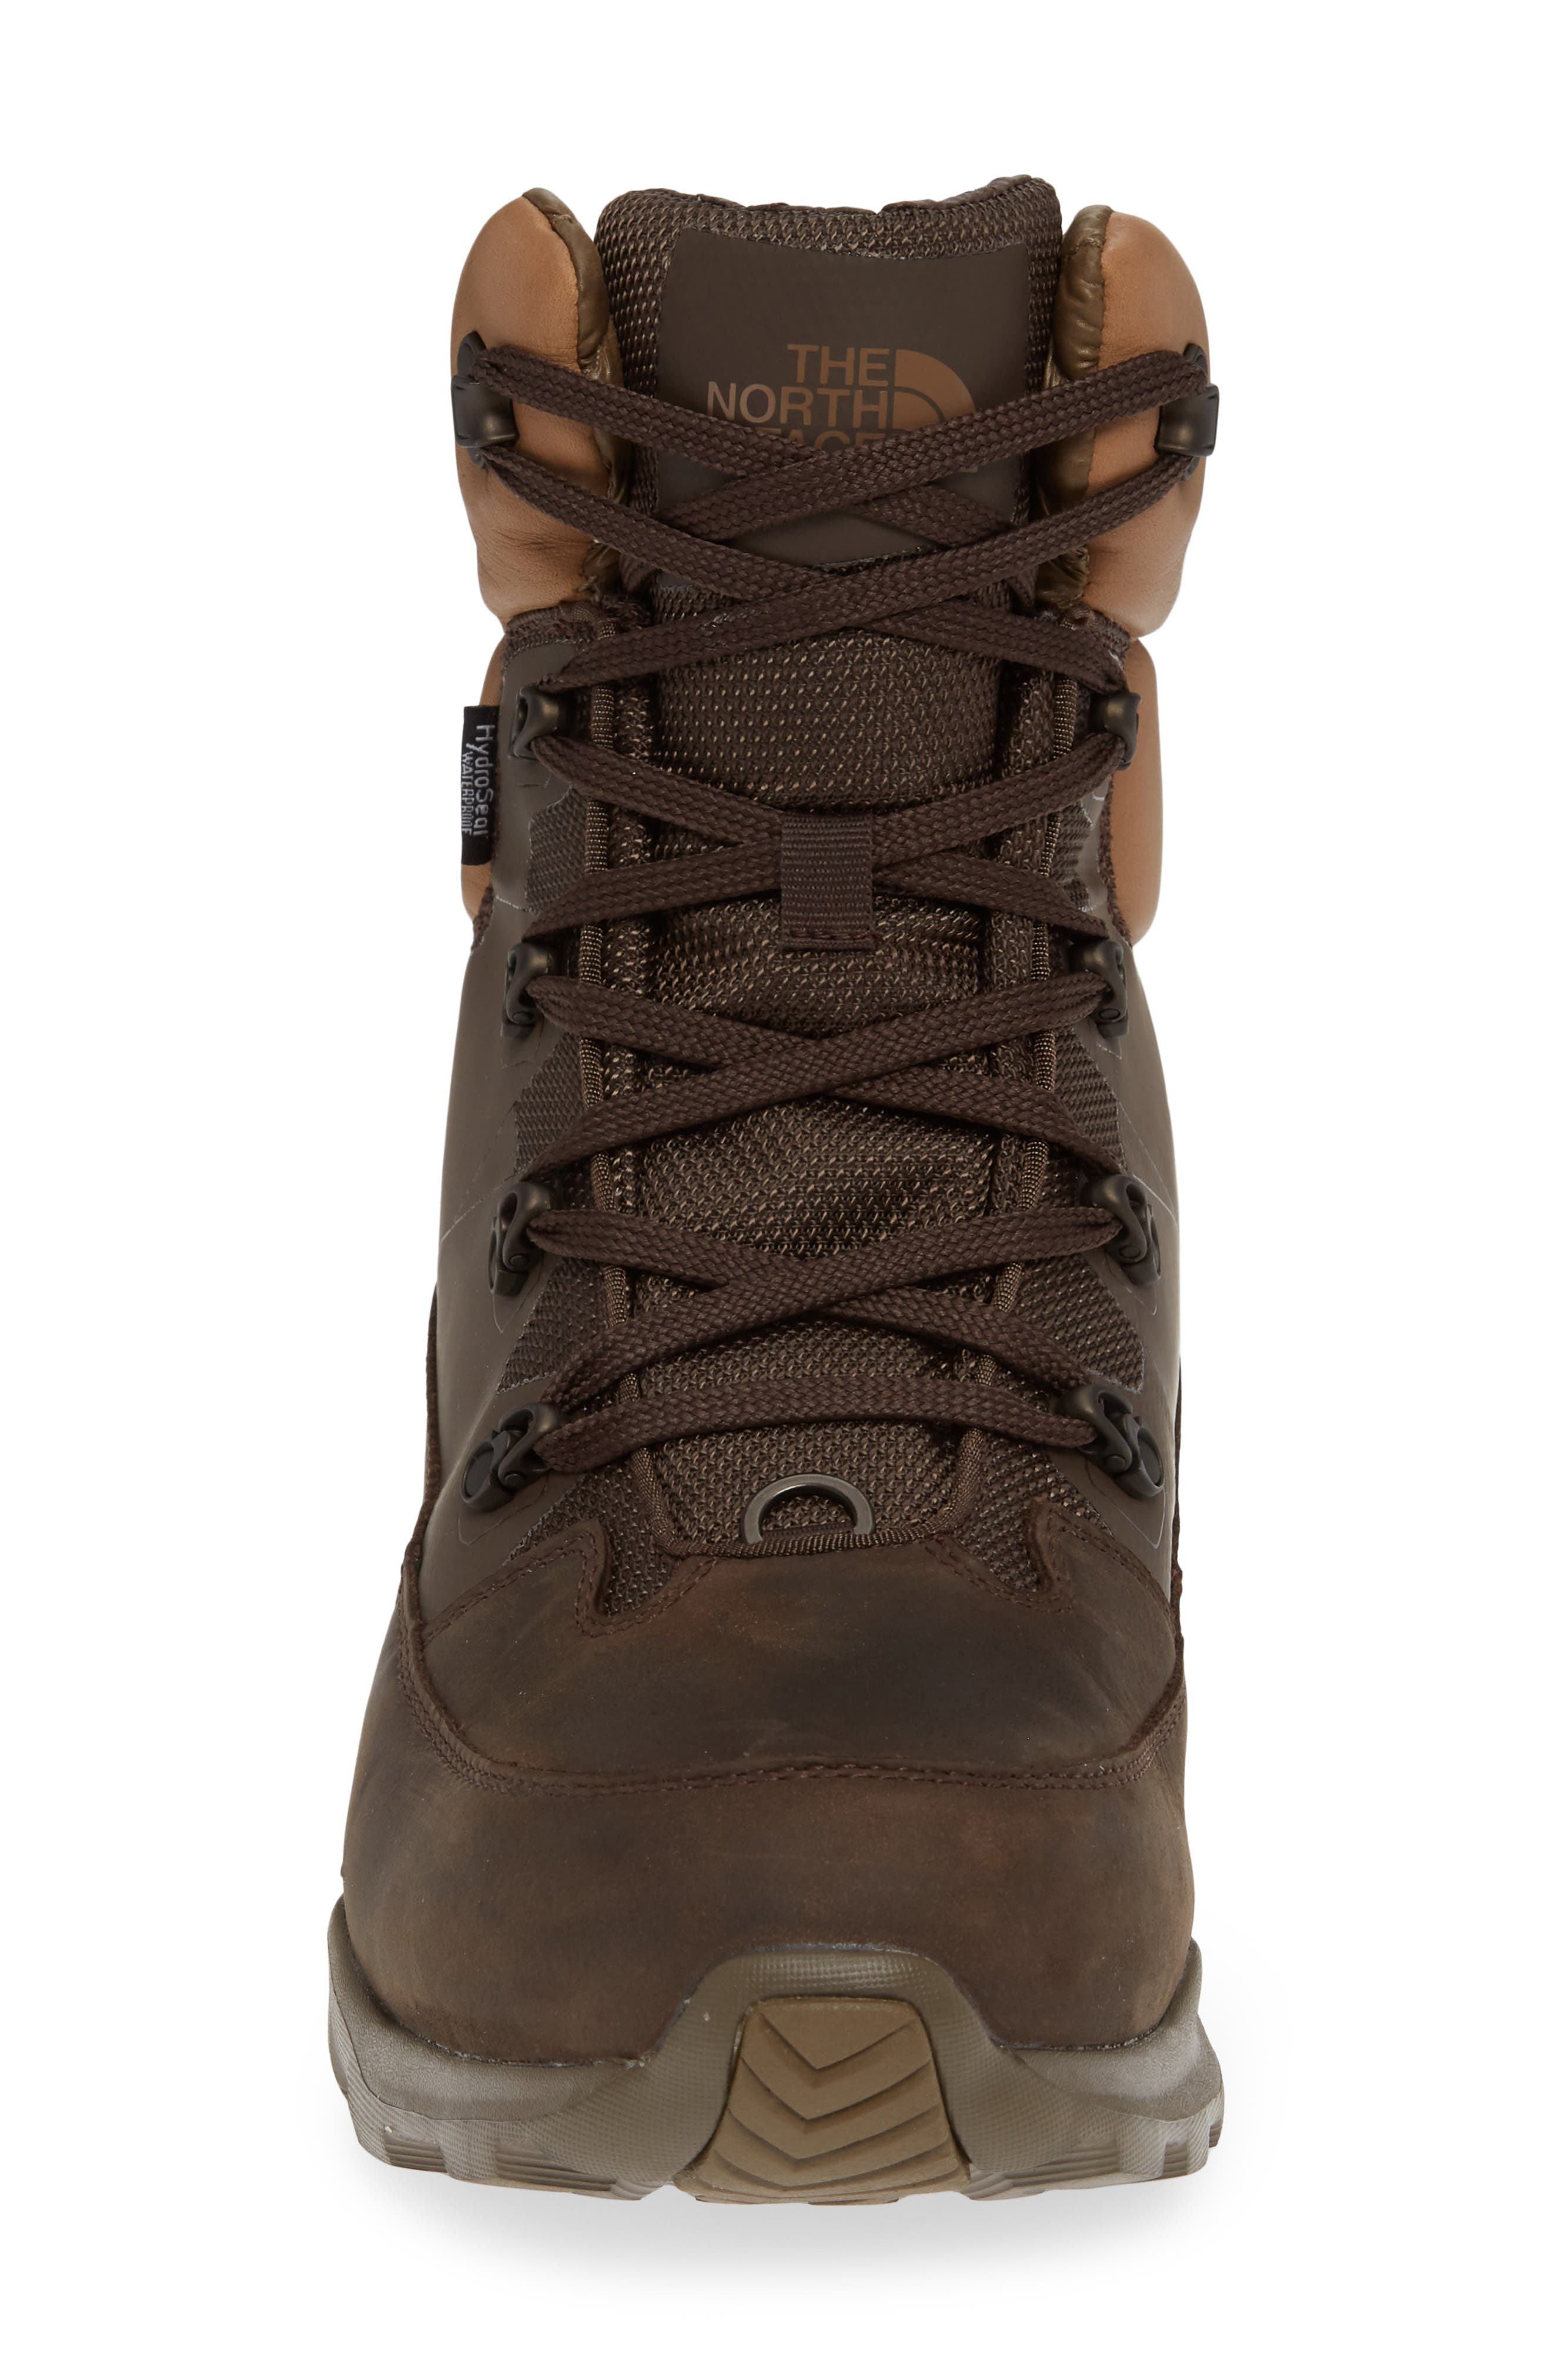 ThermoBall Lifty Snow Boot,                             Alternate thumbnail 4, color,                             CHOCOLATE BROWN/ CARGO KHAKI